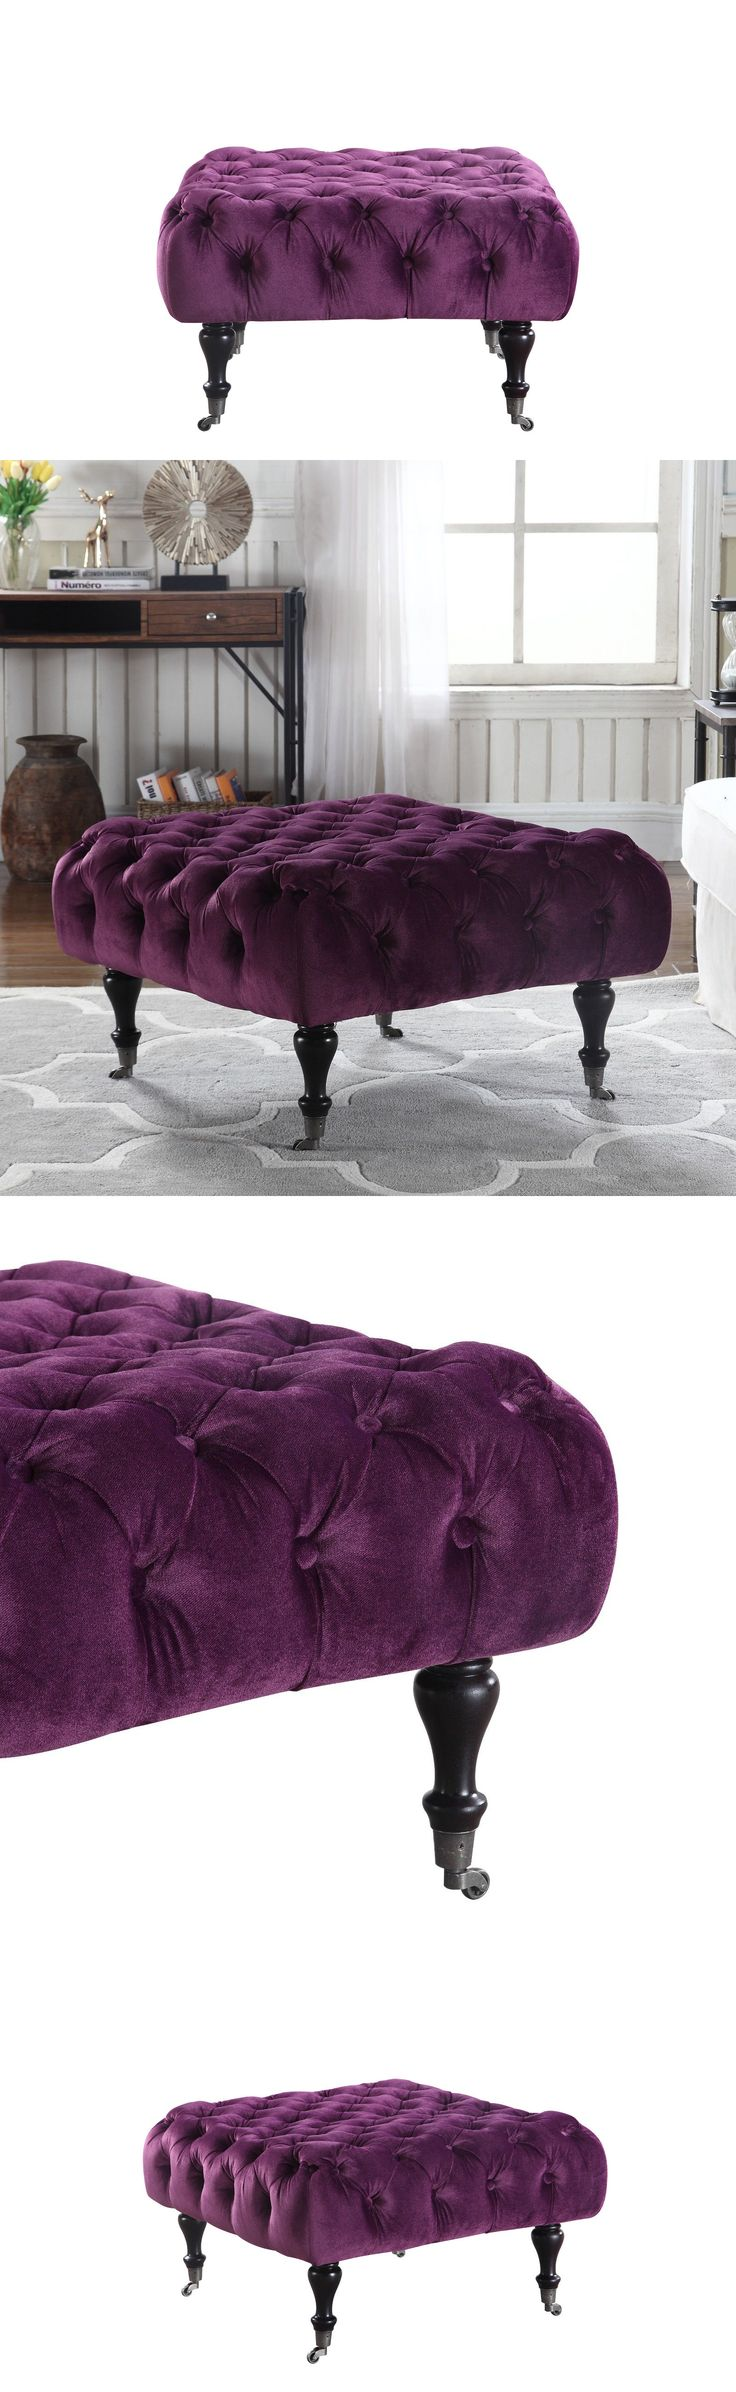 Benches and Stools 103431: Classic Tufted Velvet Footrest Footstool Ottoman With Casters (Purple) -> BUY IT NOW ONLY: $74.99 on eBay!